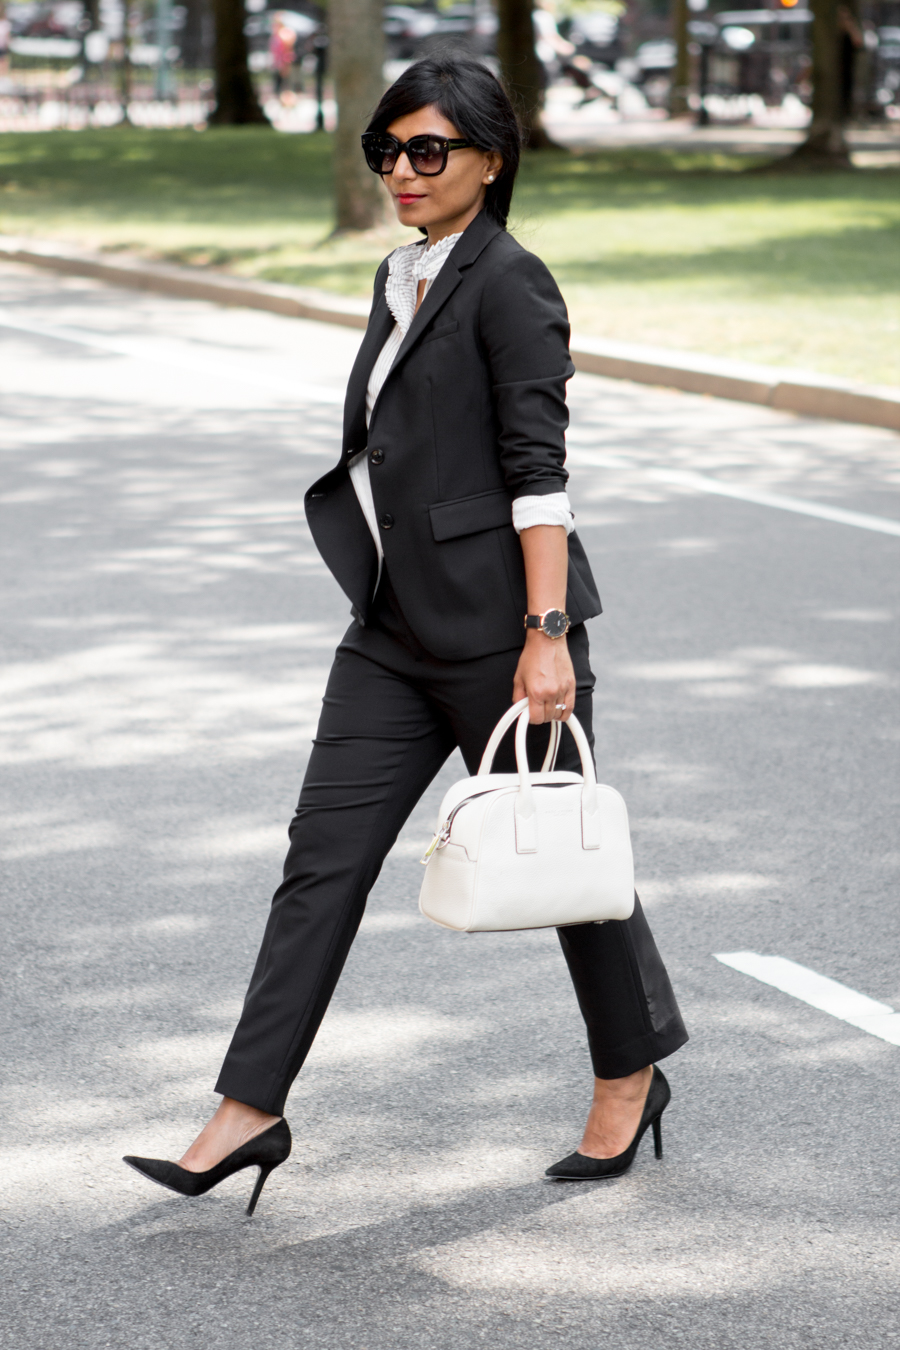 Work Style - Versatile Separates with Banana Republic